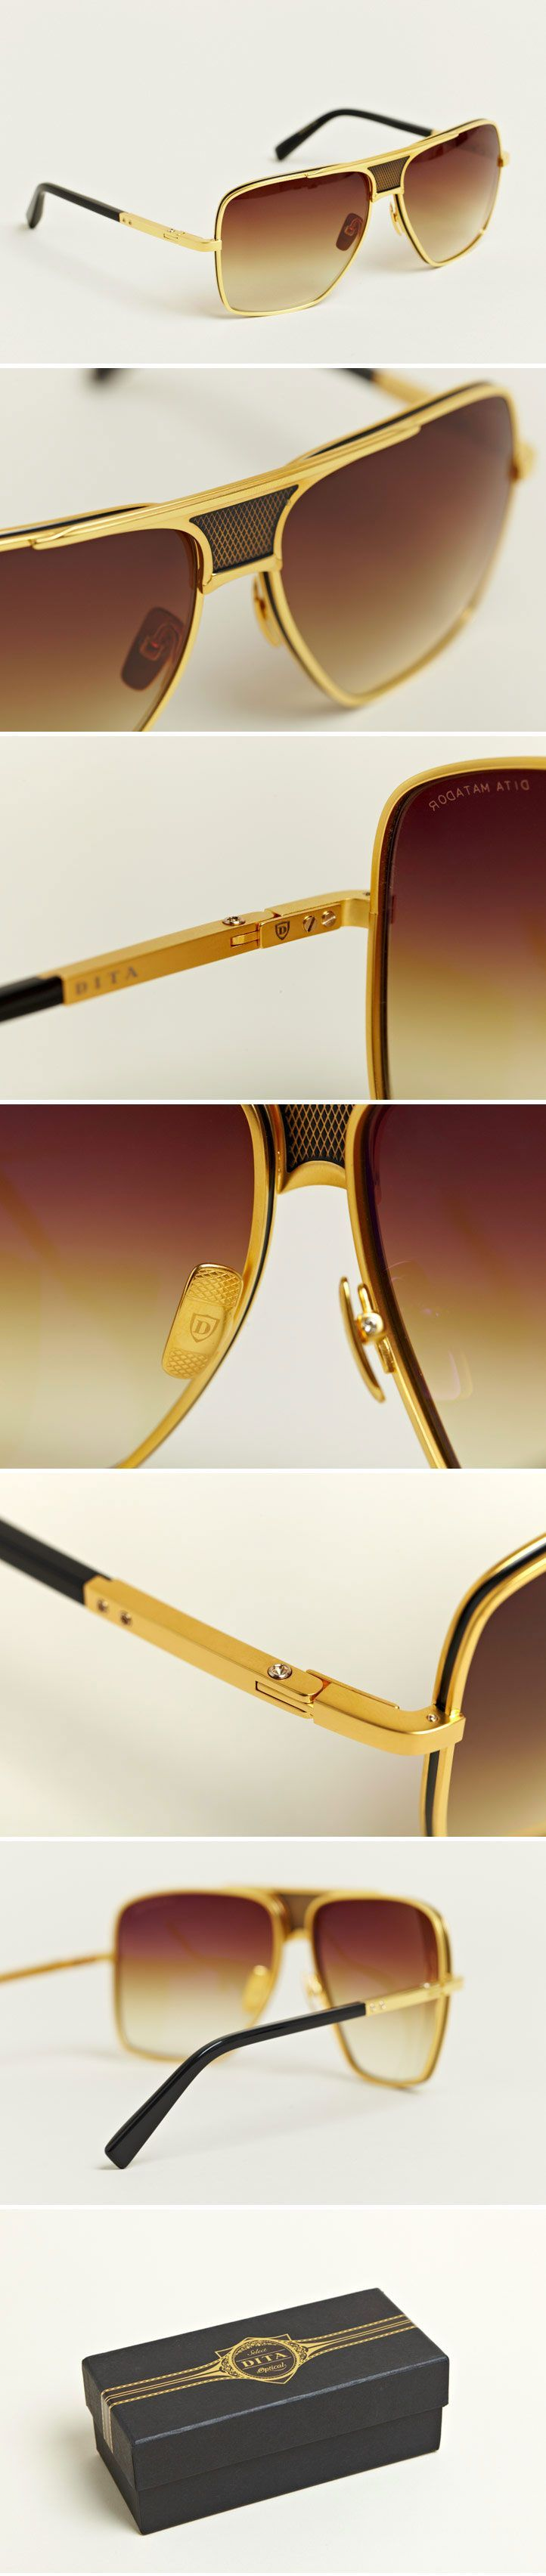 Dita - Men's Eighteen Carat Gold Matador Sunglasses - €724.00  http://www.ln-cc.com/invt/dit021014gld